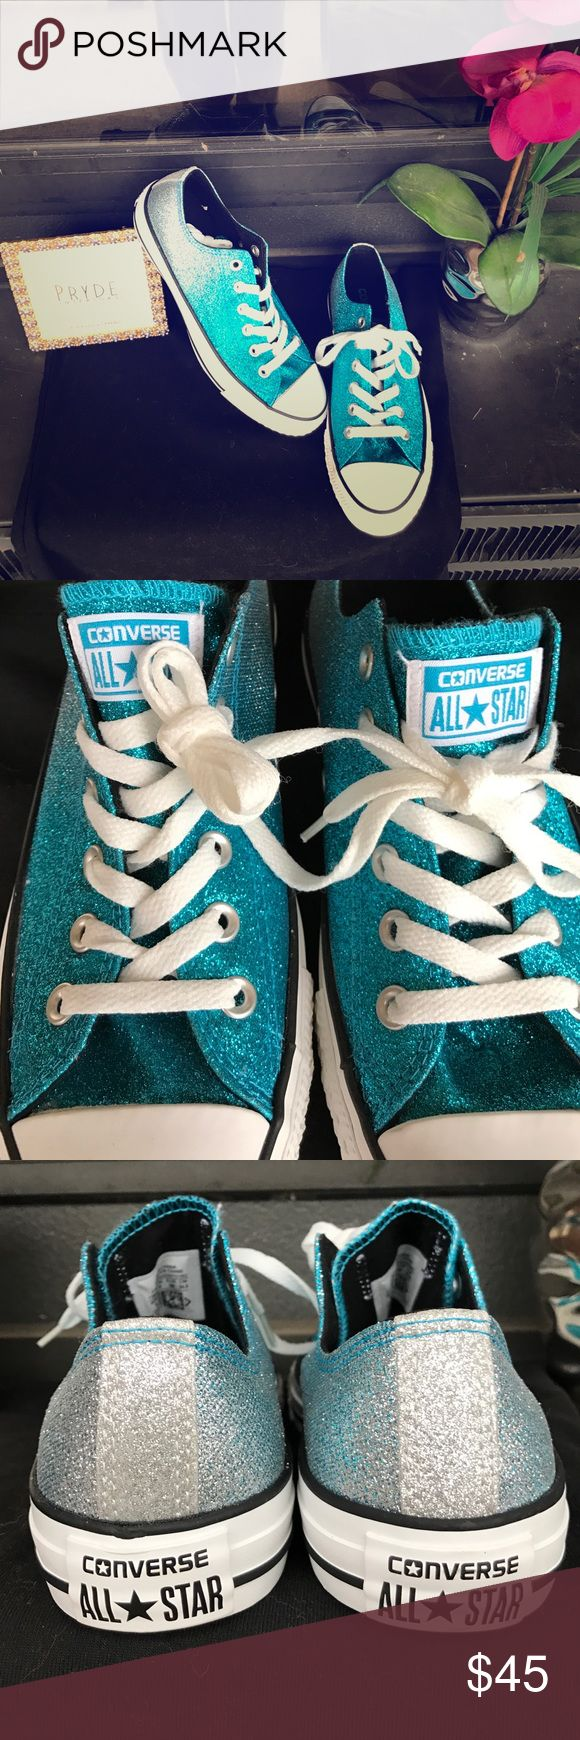 NWOT! Blue/Silver Glittered Converse! The shoes begin with white toes, blue glitter ombrés into silver at the heels. Perfect condition, never worn. Firm Price. NWOT Converse Shoes Sneakers